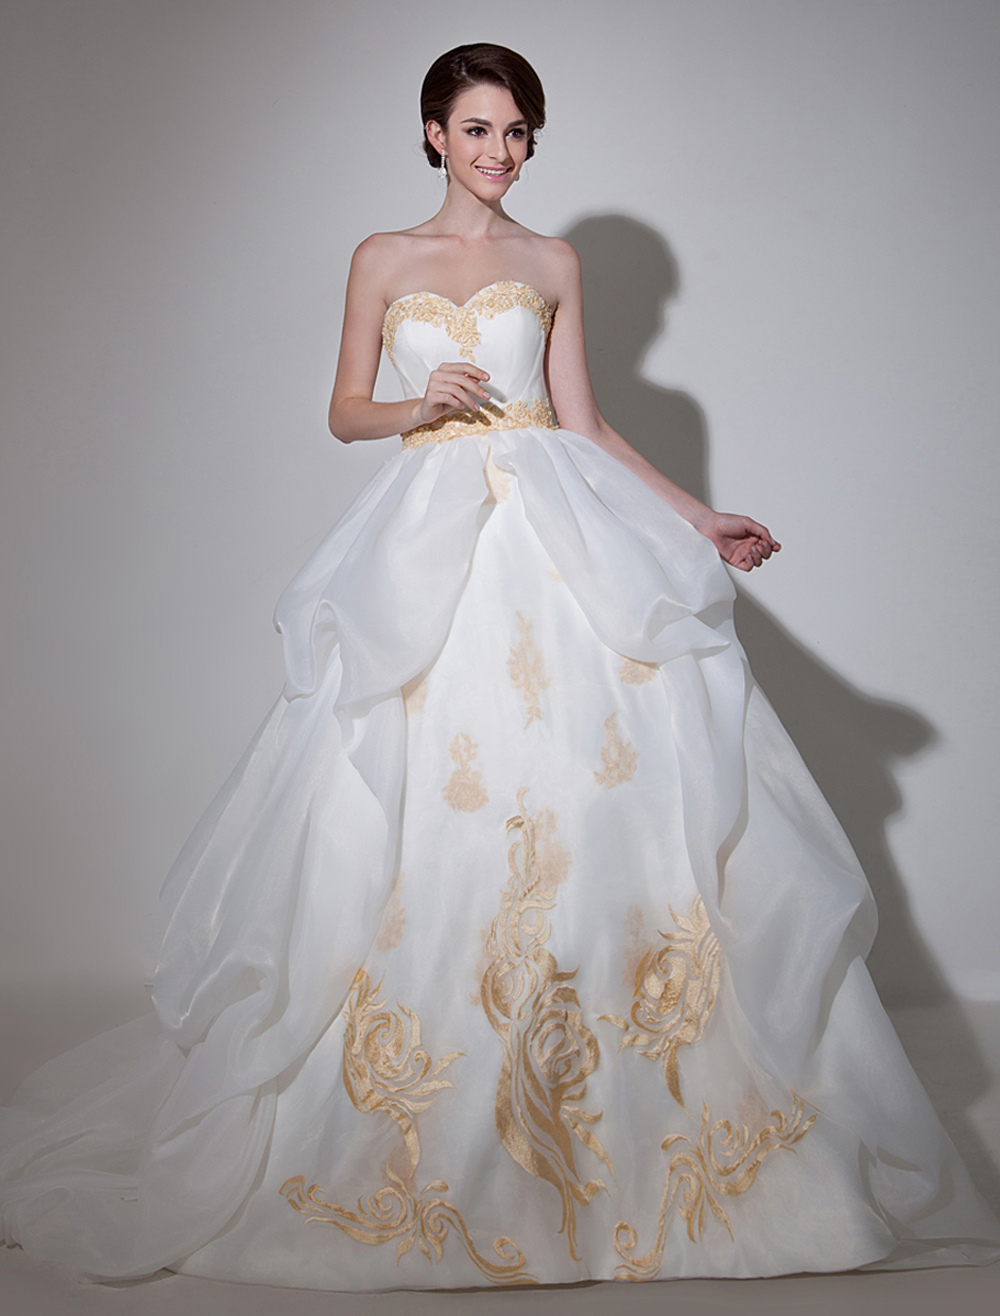 Ivory Sweetheart Ball Gown Strapless Wedding Dress For Bride With Embroidered Milanoo